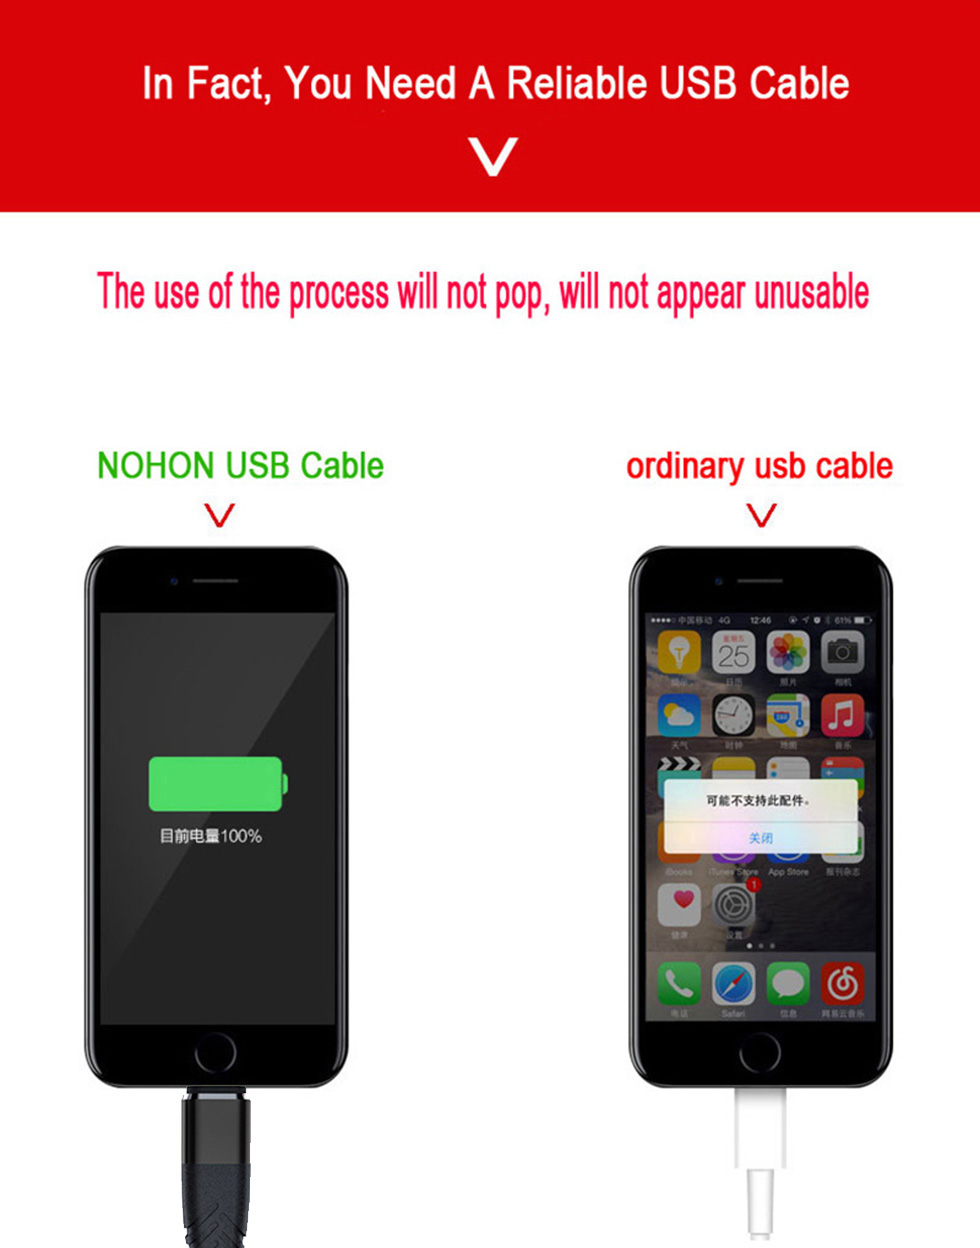 US $2.87 20% OFF 2M 3M USB Data Charger Cable For iPhone 7 8 Plus 11 Pro X XS Max Apple iPhone 5 6 S 6S Cord Fast Charge Origin Long i Phone